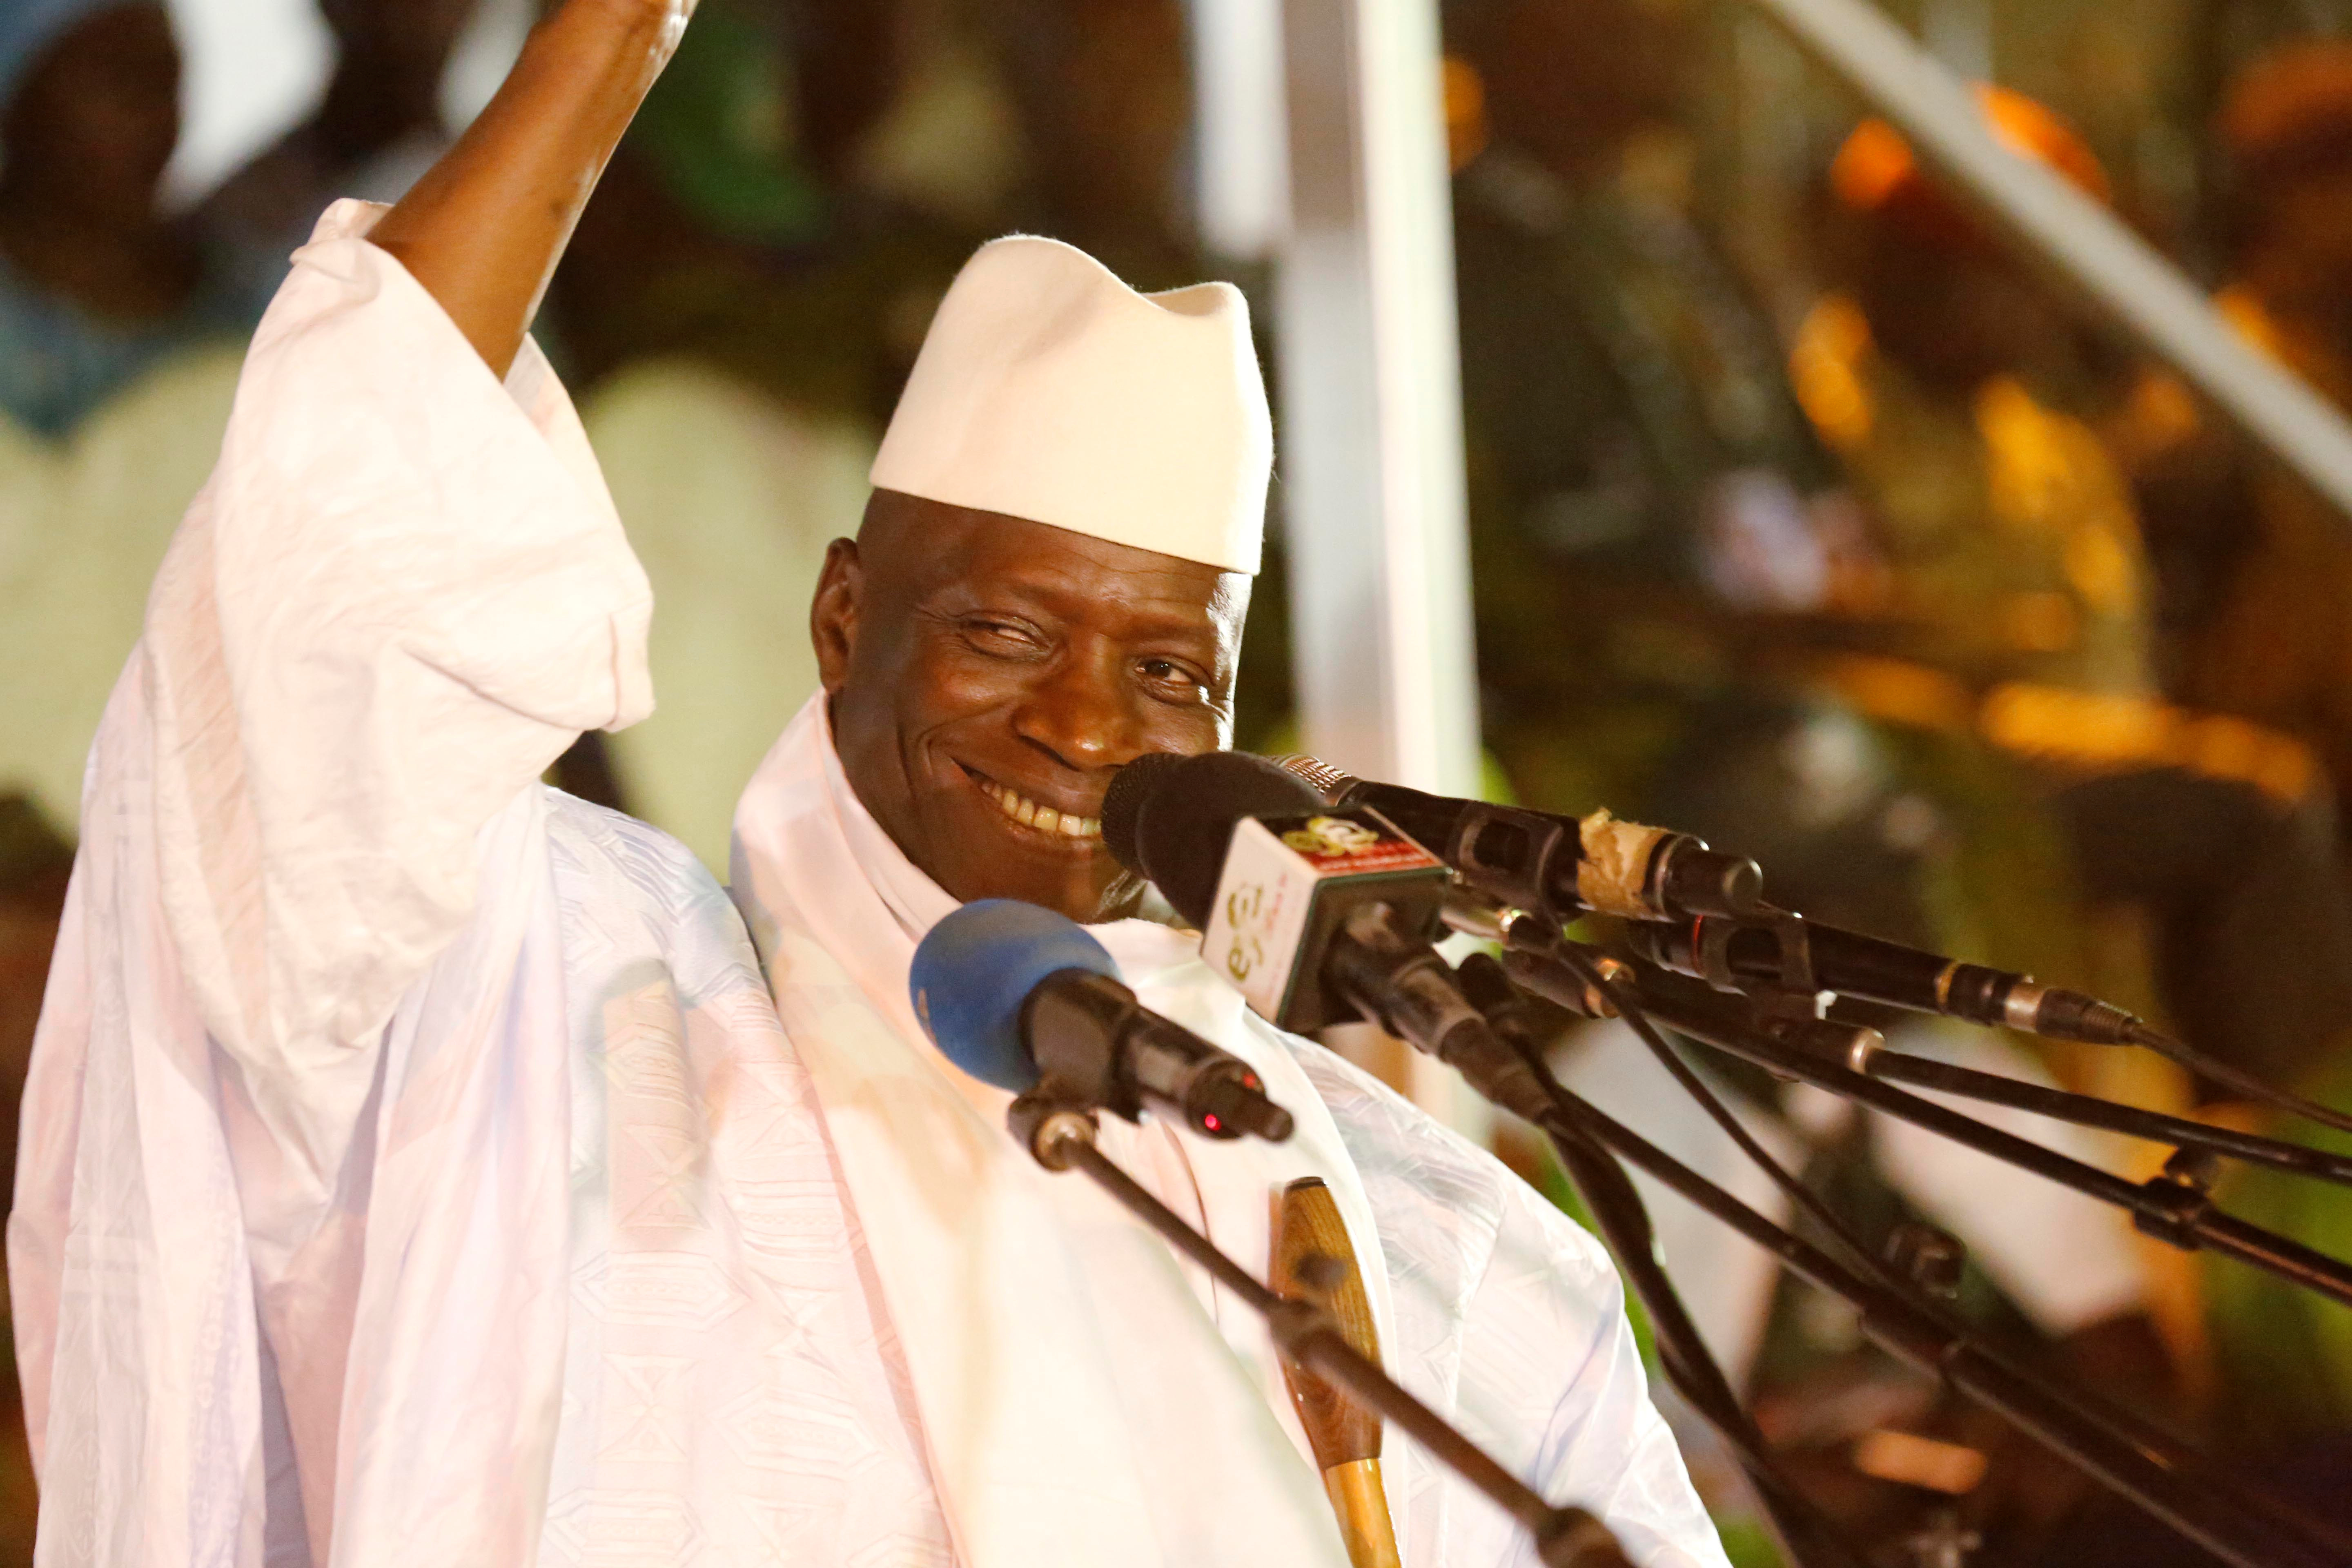 Gambia's President Yahya Jammeh, attends a rally in Banjul, Gambia, Nov. 29, 2016.